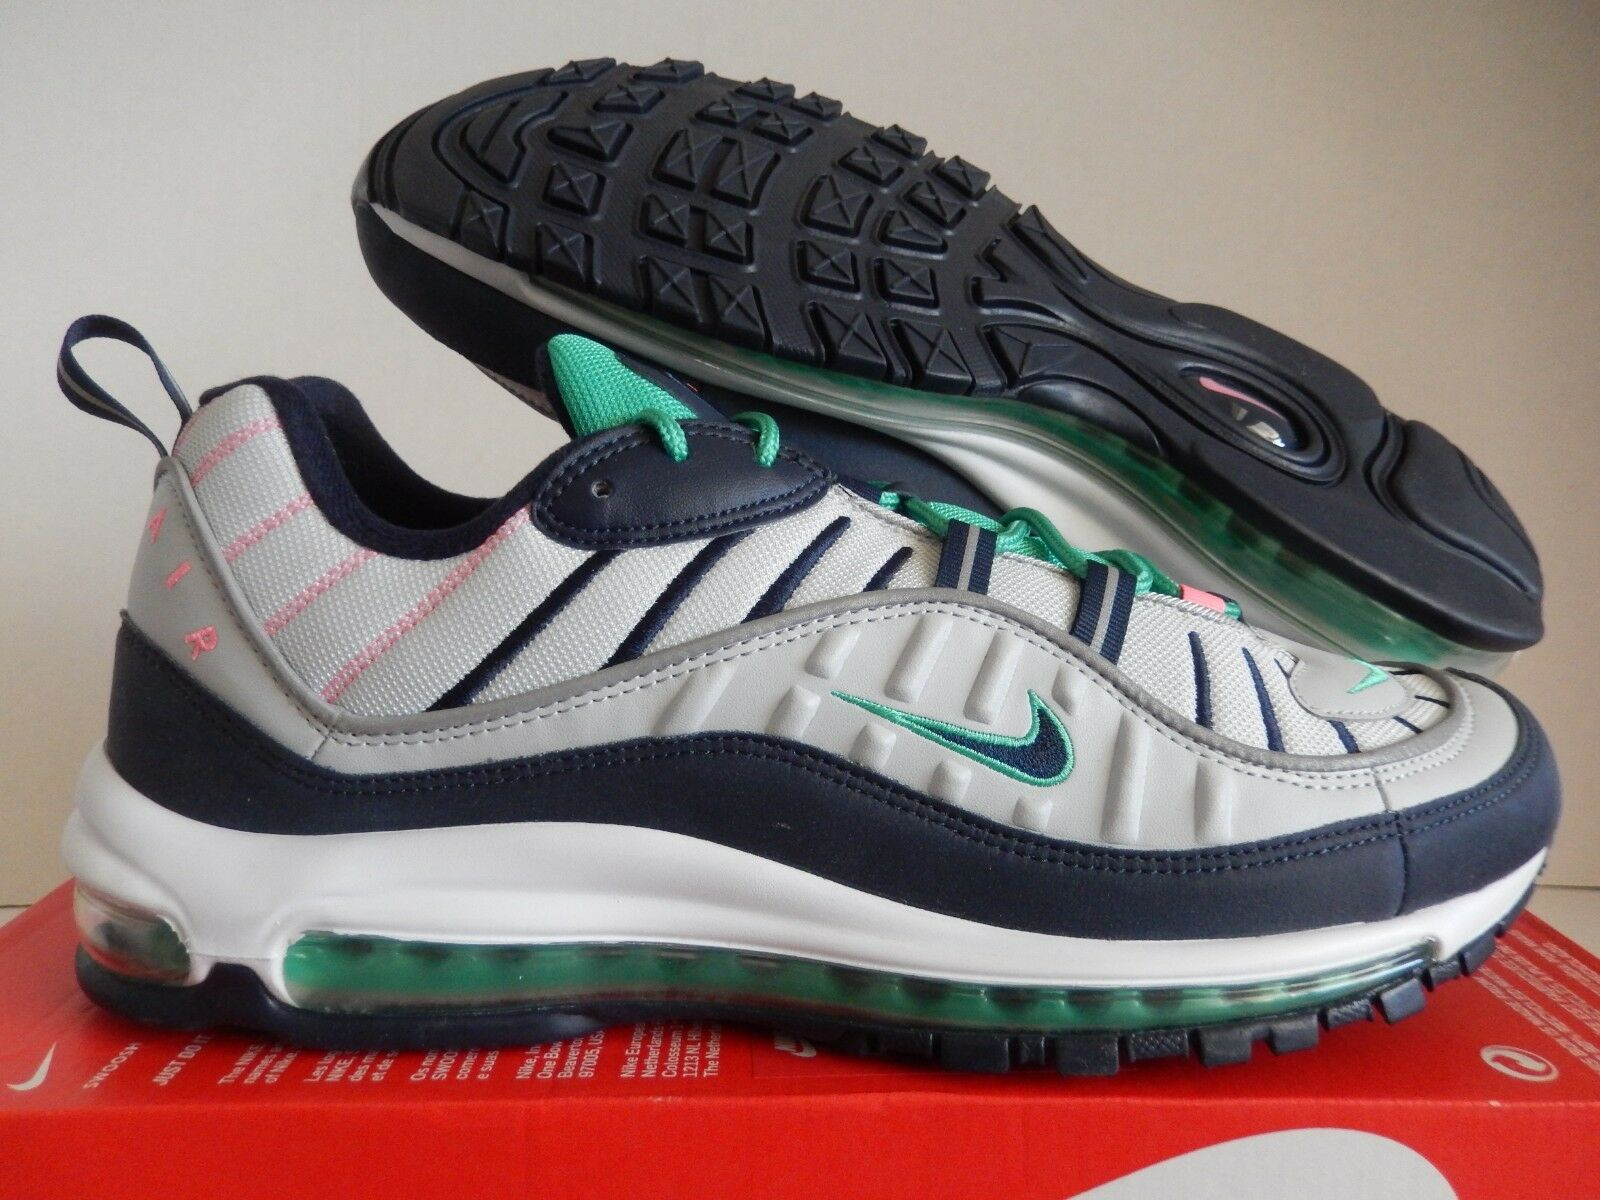 NIKE AIR MAX 98 SOUTH BEACH PURE Platinum-Obsidienne Taille 14